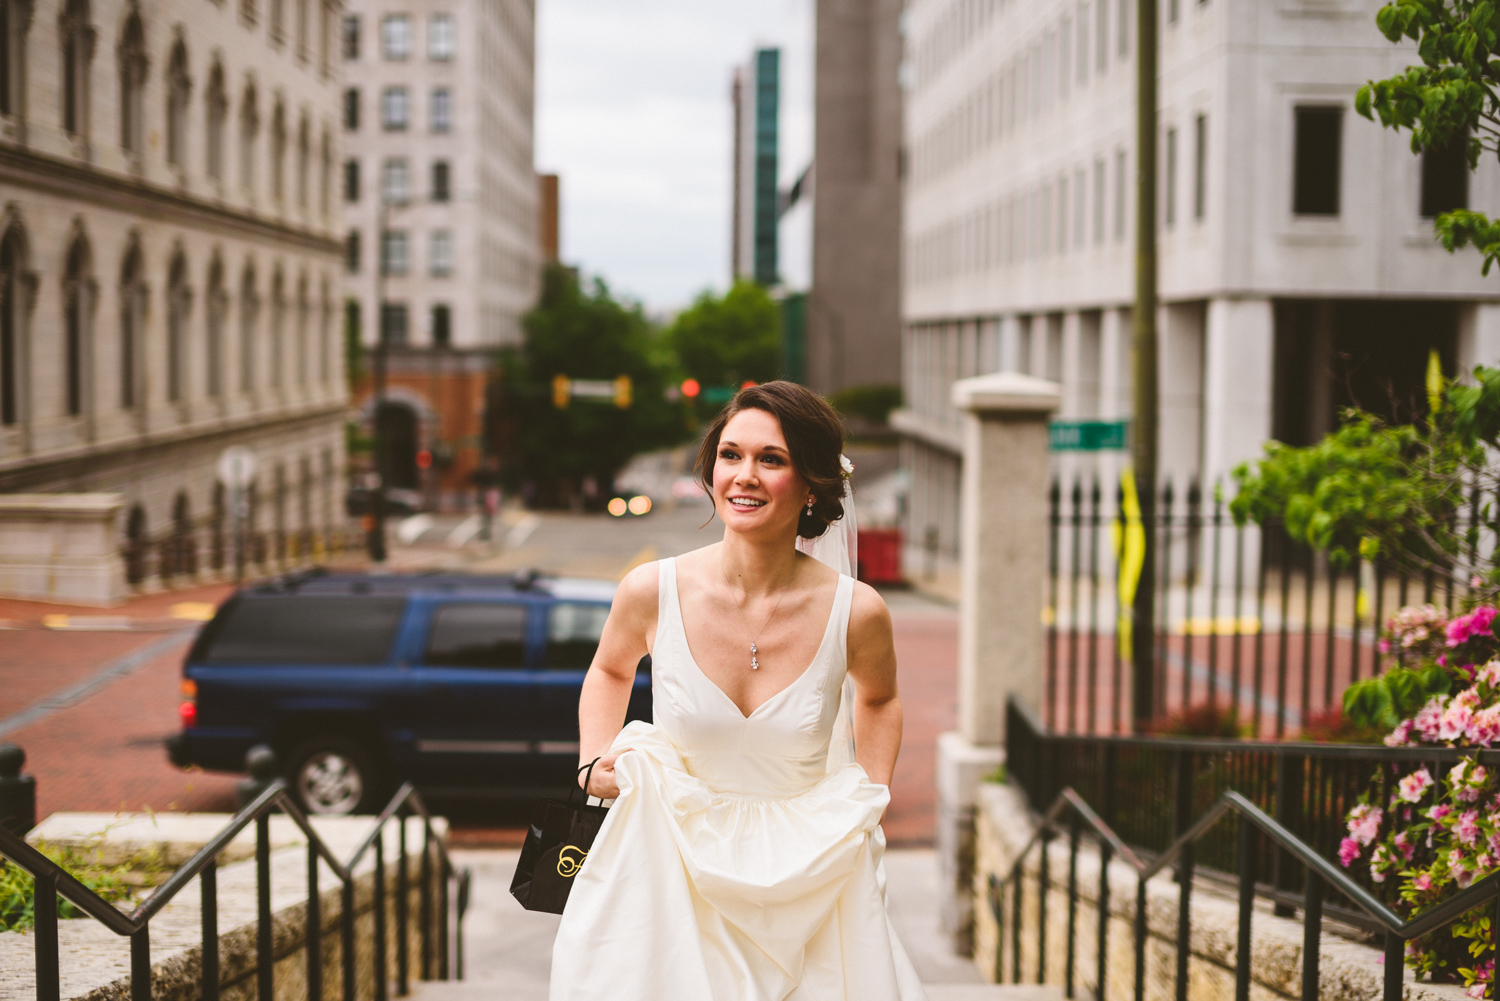 007 - bride walking up to see groom for their first look.jpg